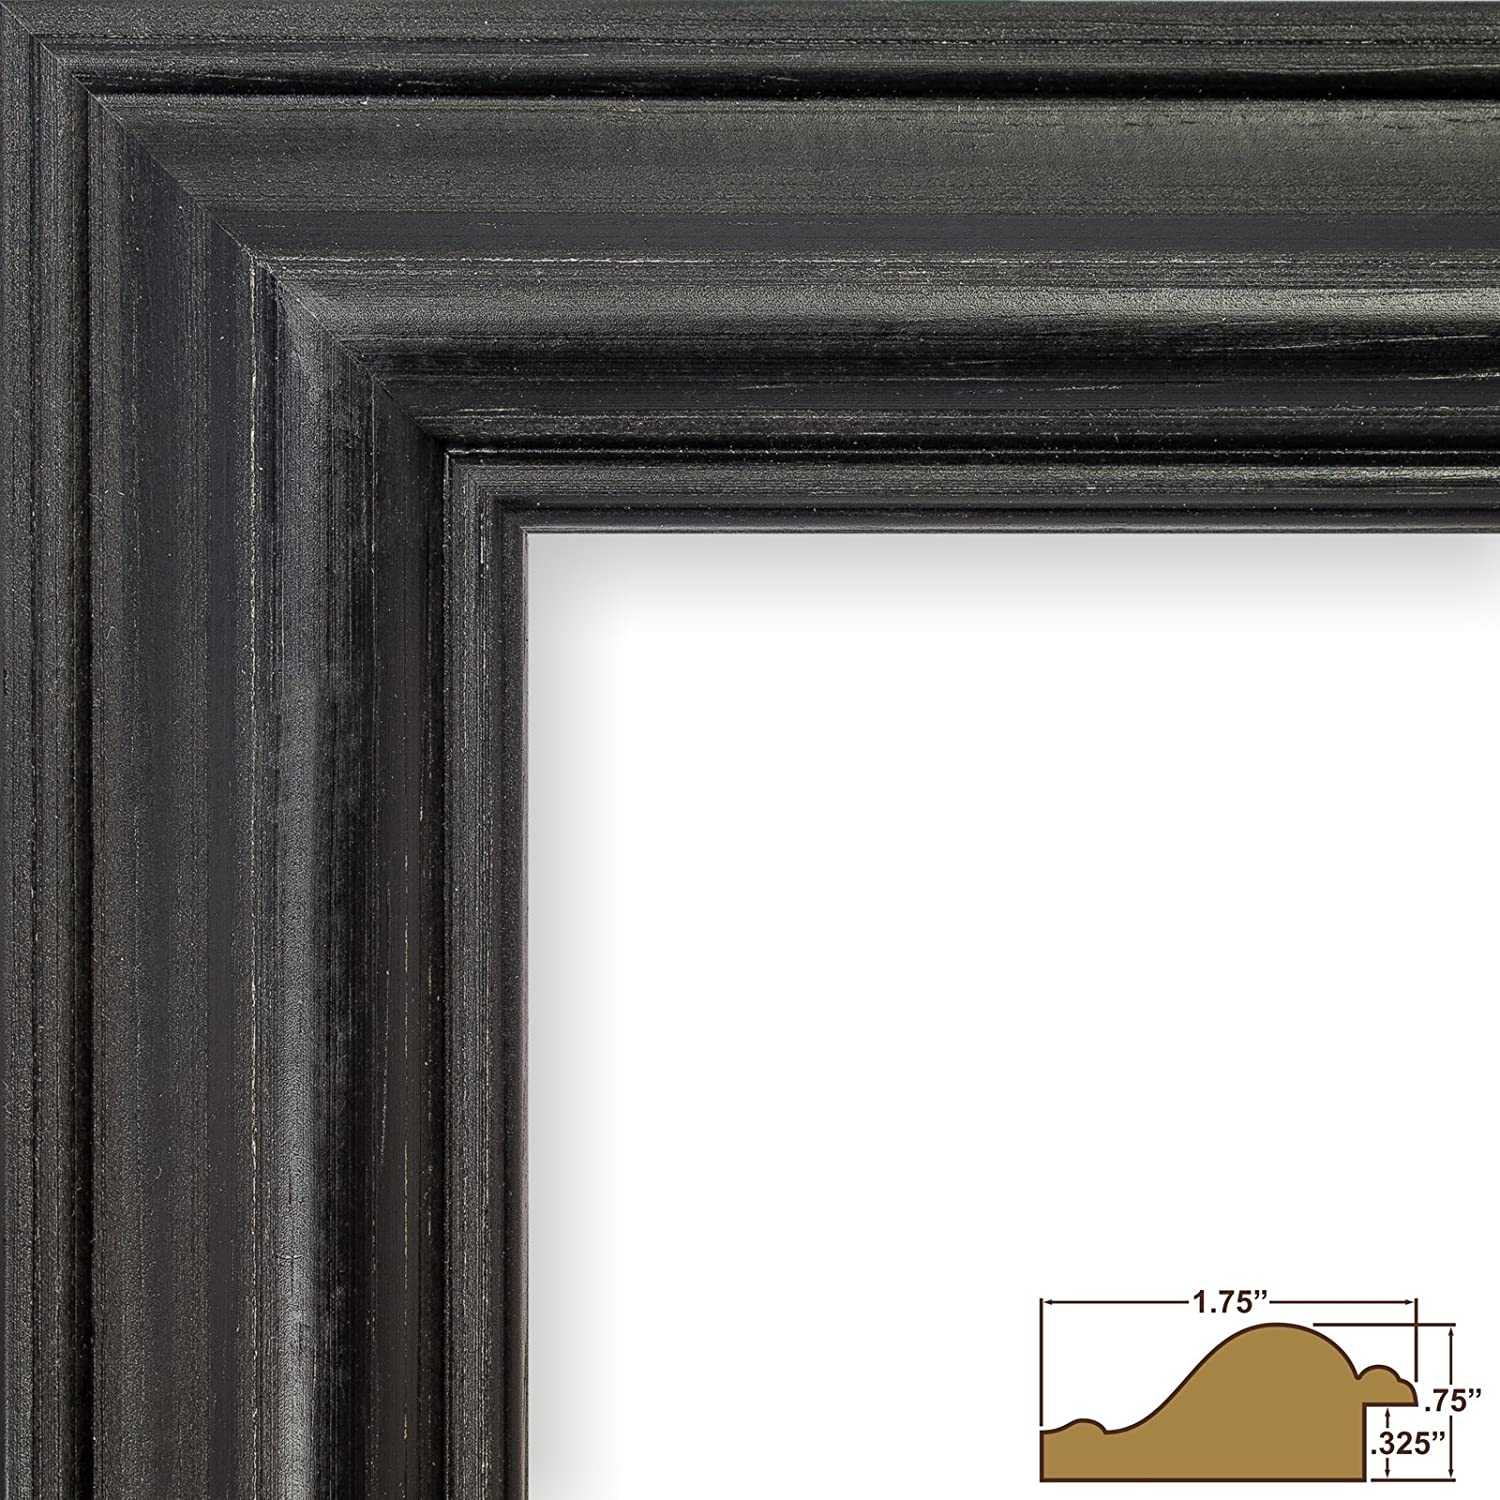 Craig Frames 77332905 Empty Picture Frame 13 by 19-Inch American Classic Frame Shell 1.75-Inch Wide Black Pine Wood